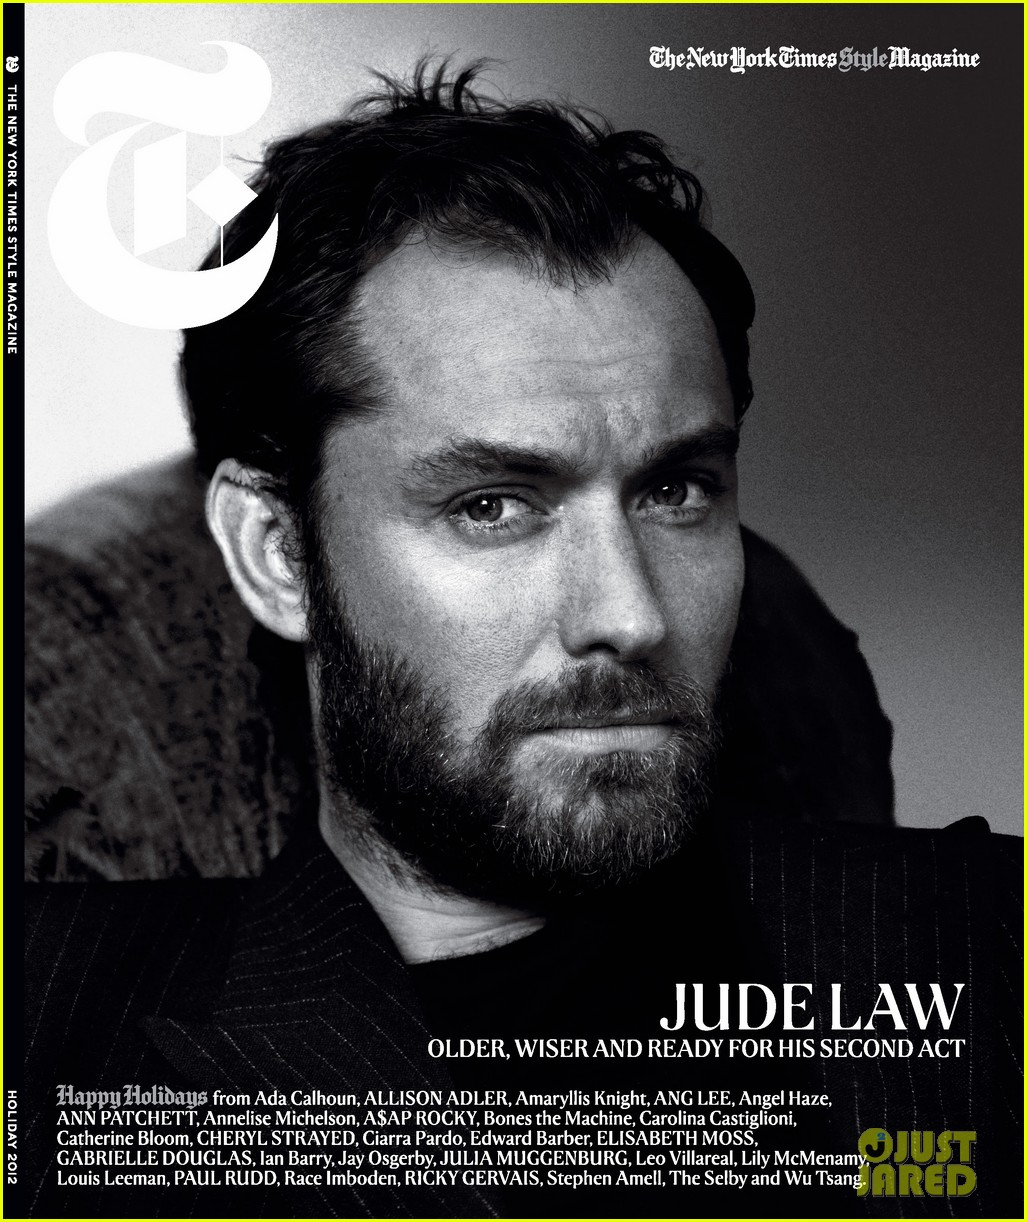 jude law im not that pretty young thing anymore 01